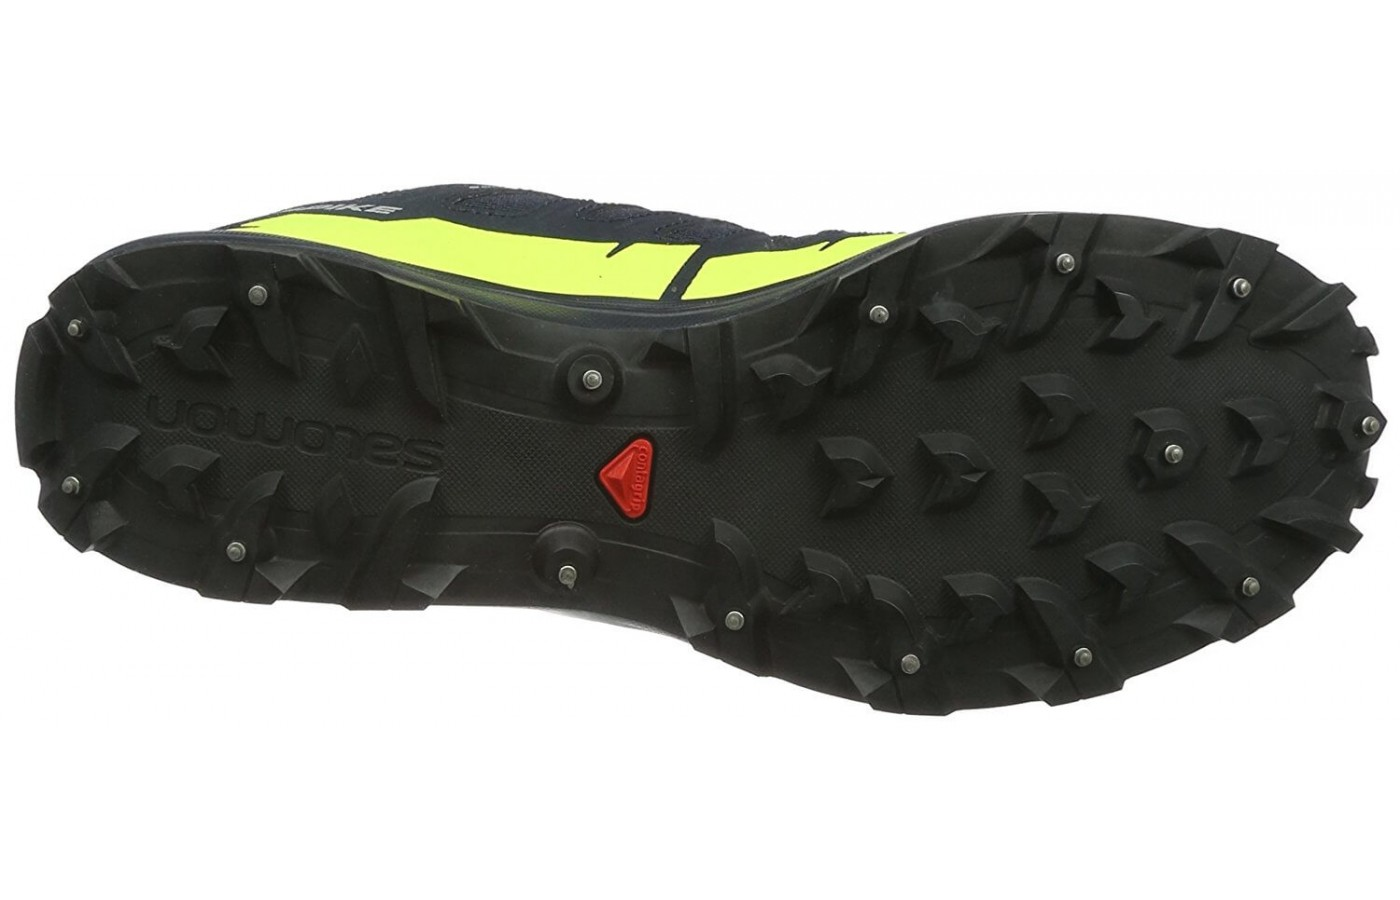 The Salomon Speedspike CS has 15 carbide spikes on its outsole